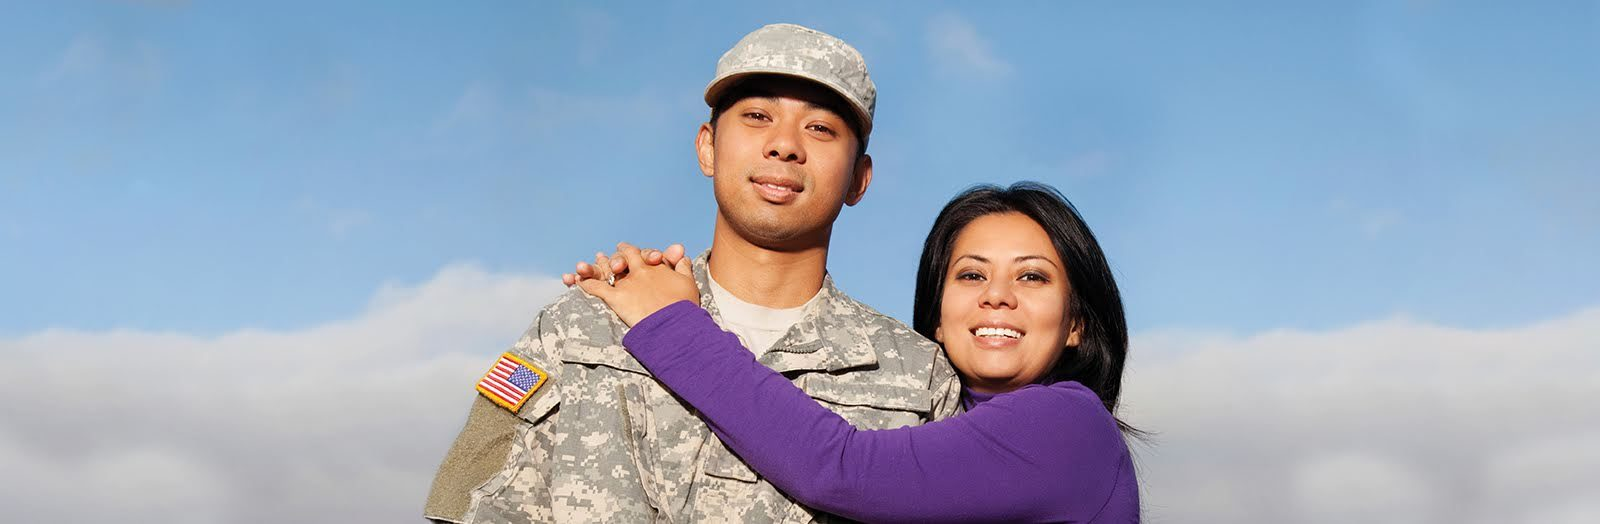 Military Tuition Assistance College